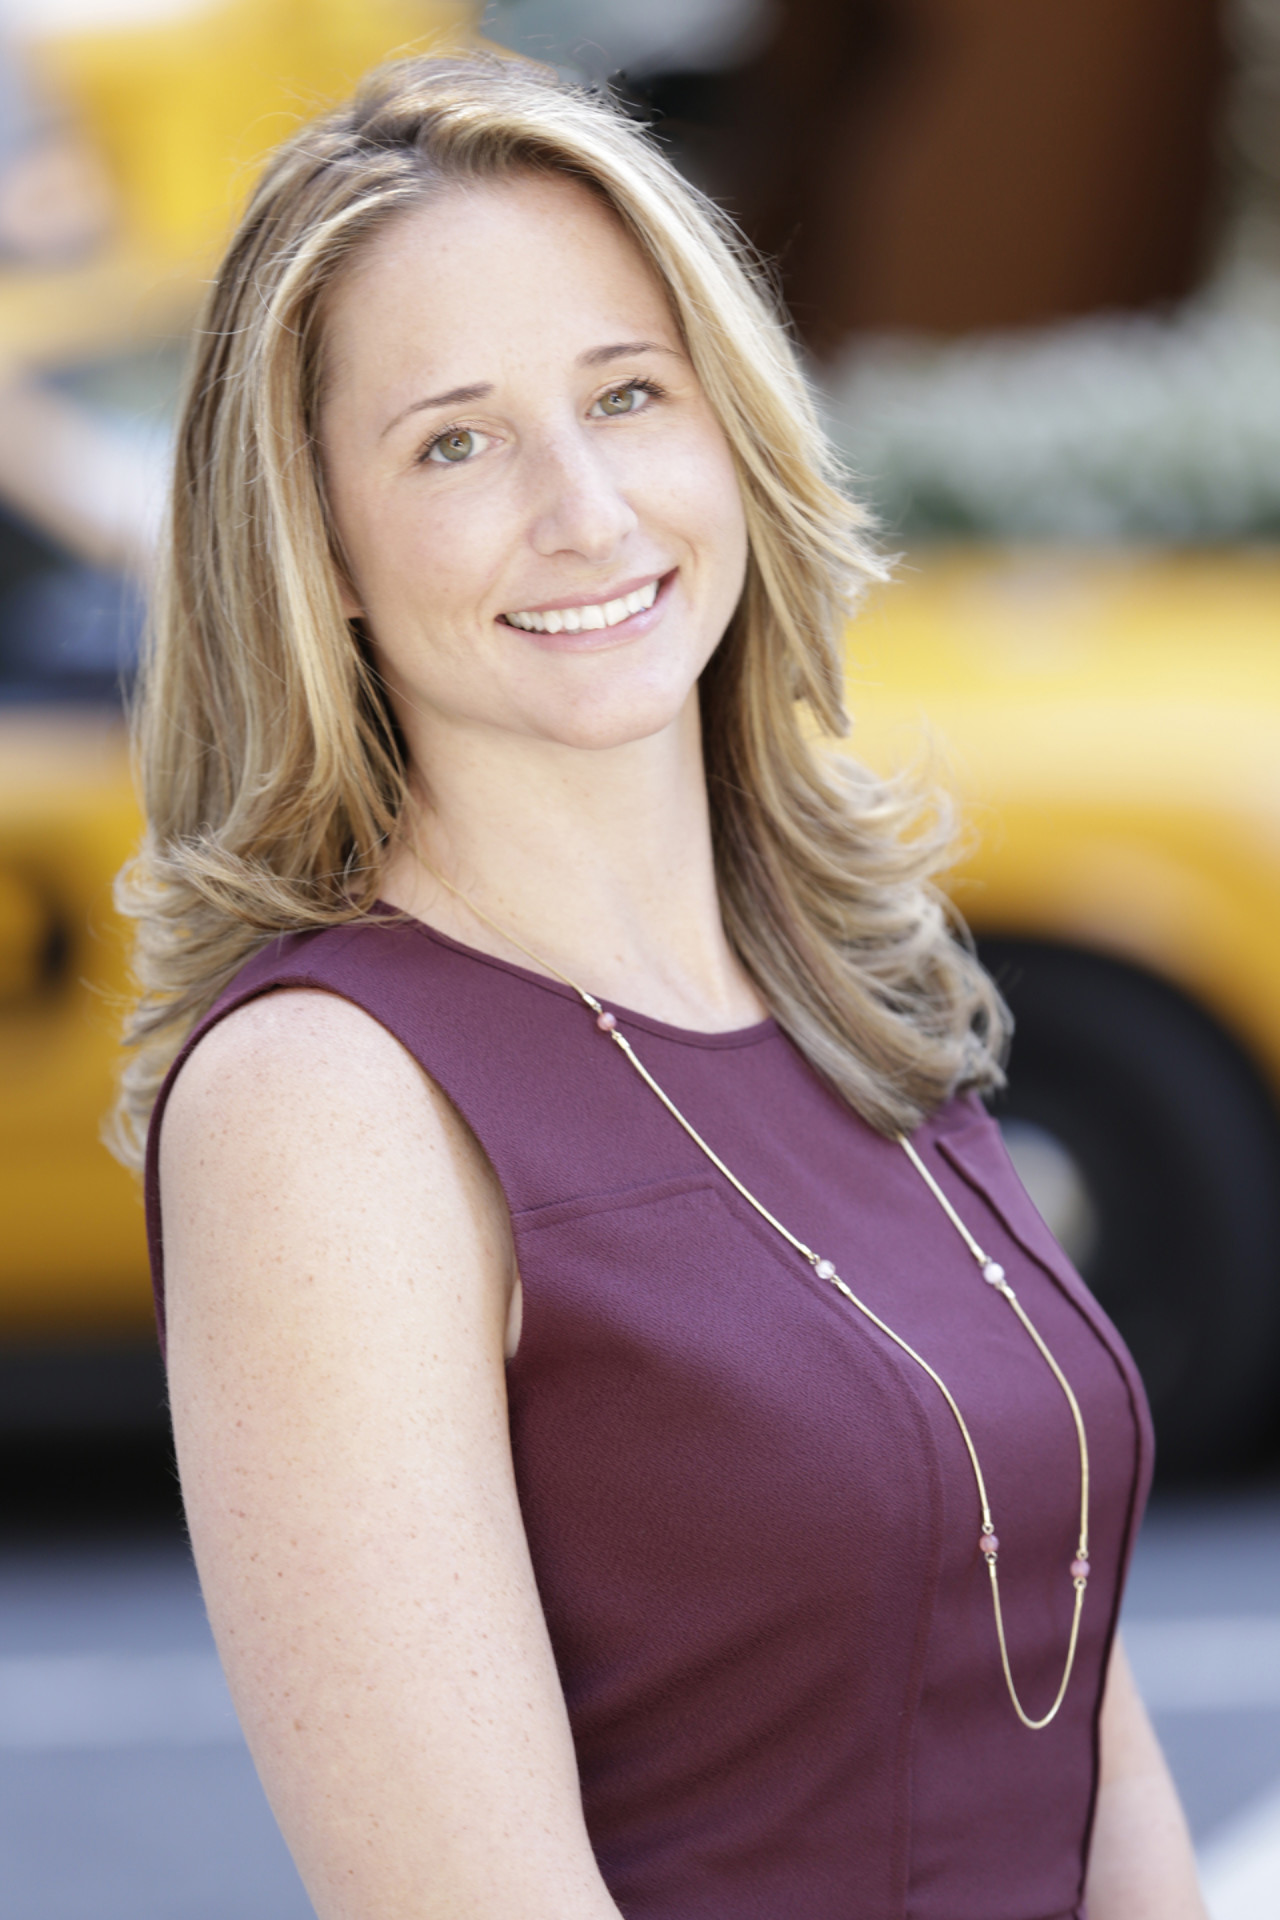 kristy daley has been appointed senior travel industry